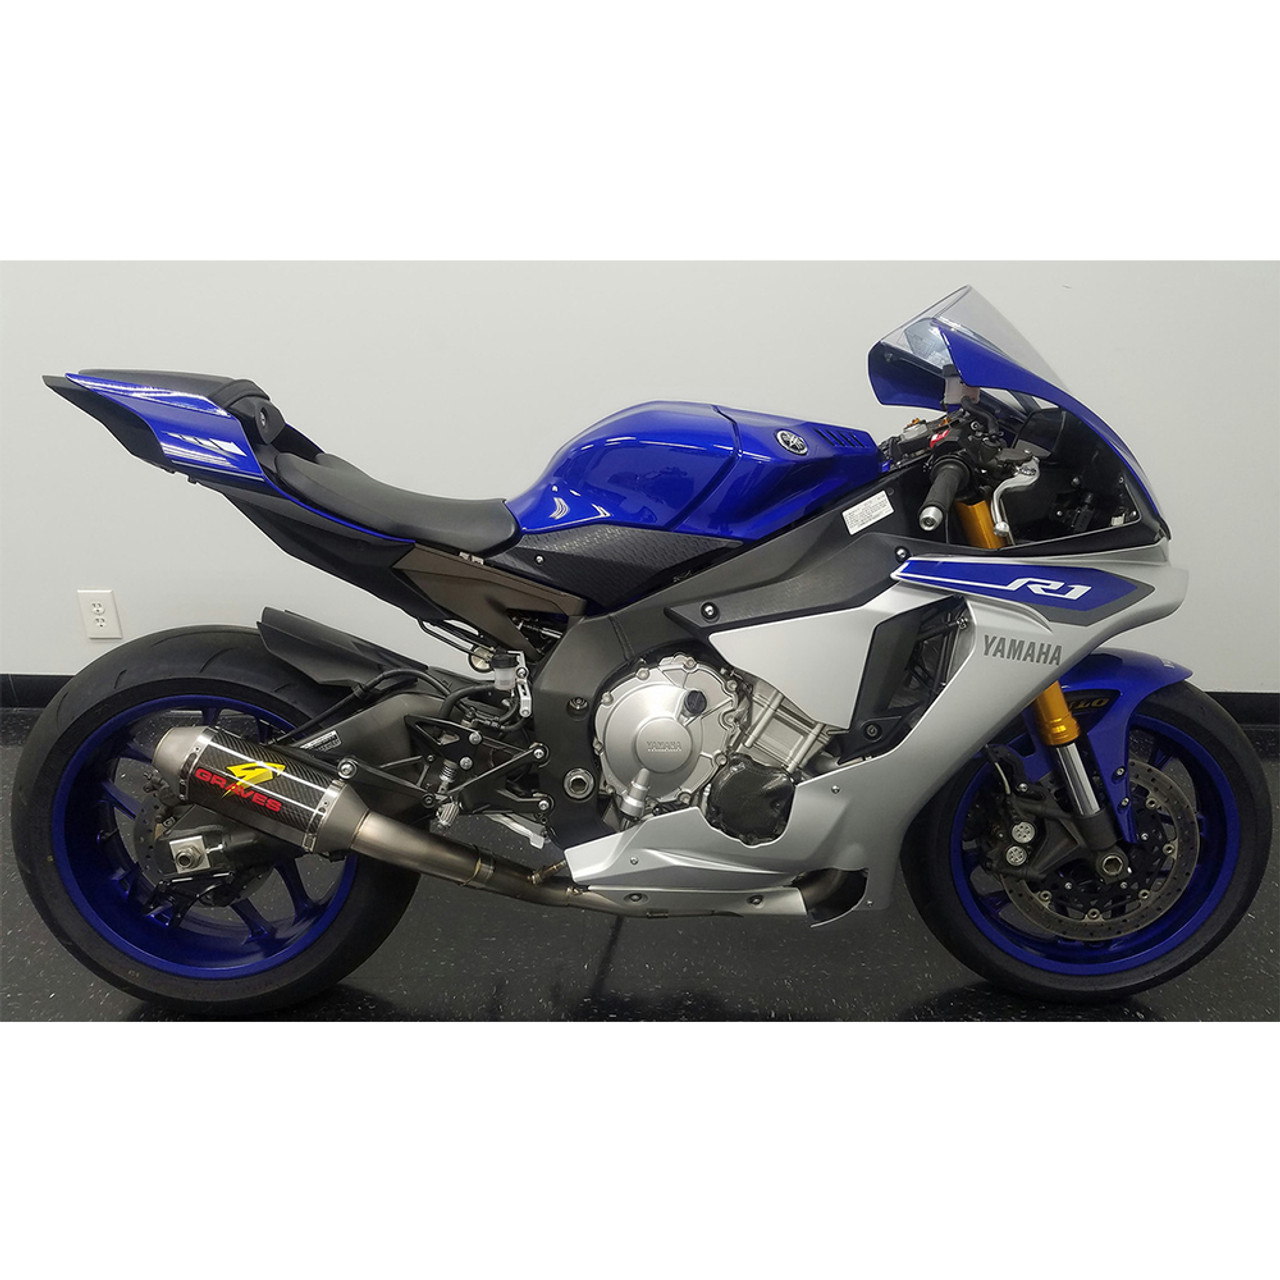 Graves Motorsports Yamaha Yzf R1 15 19 Full Titanium Exhaust System With 200mm Silencer